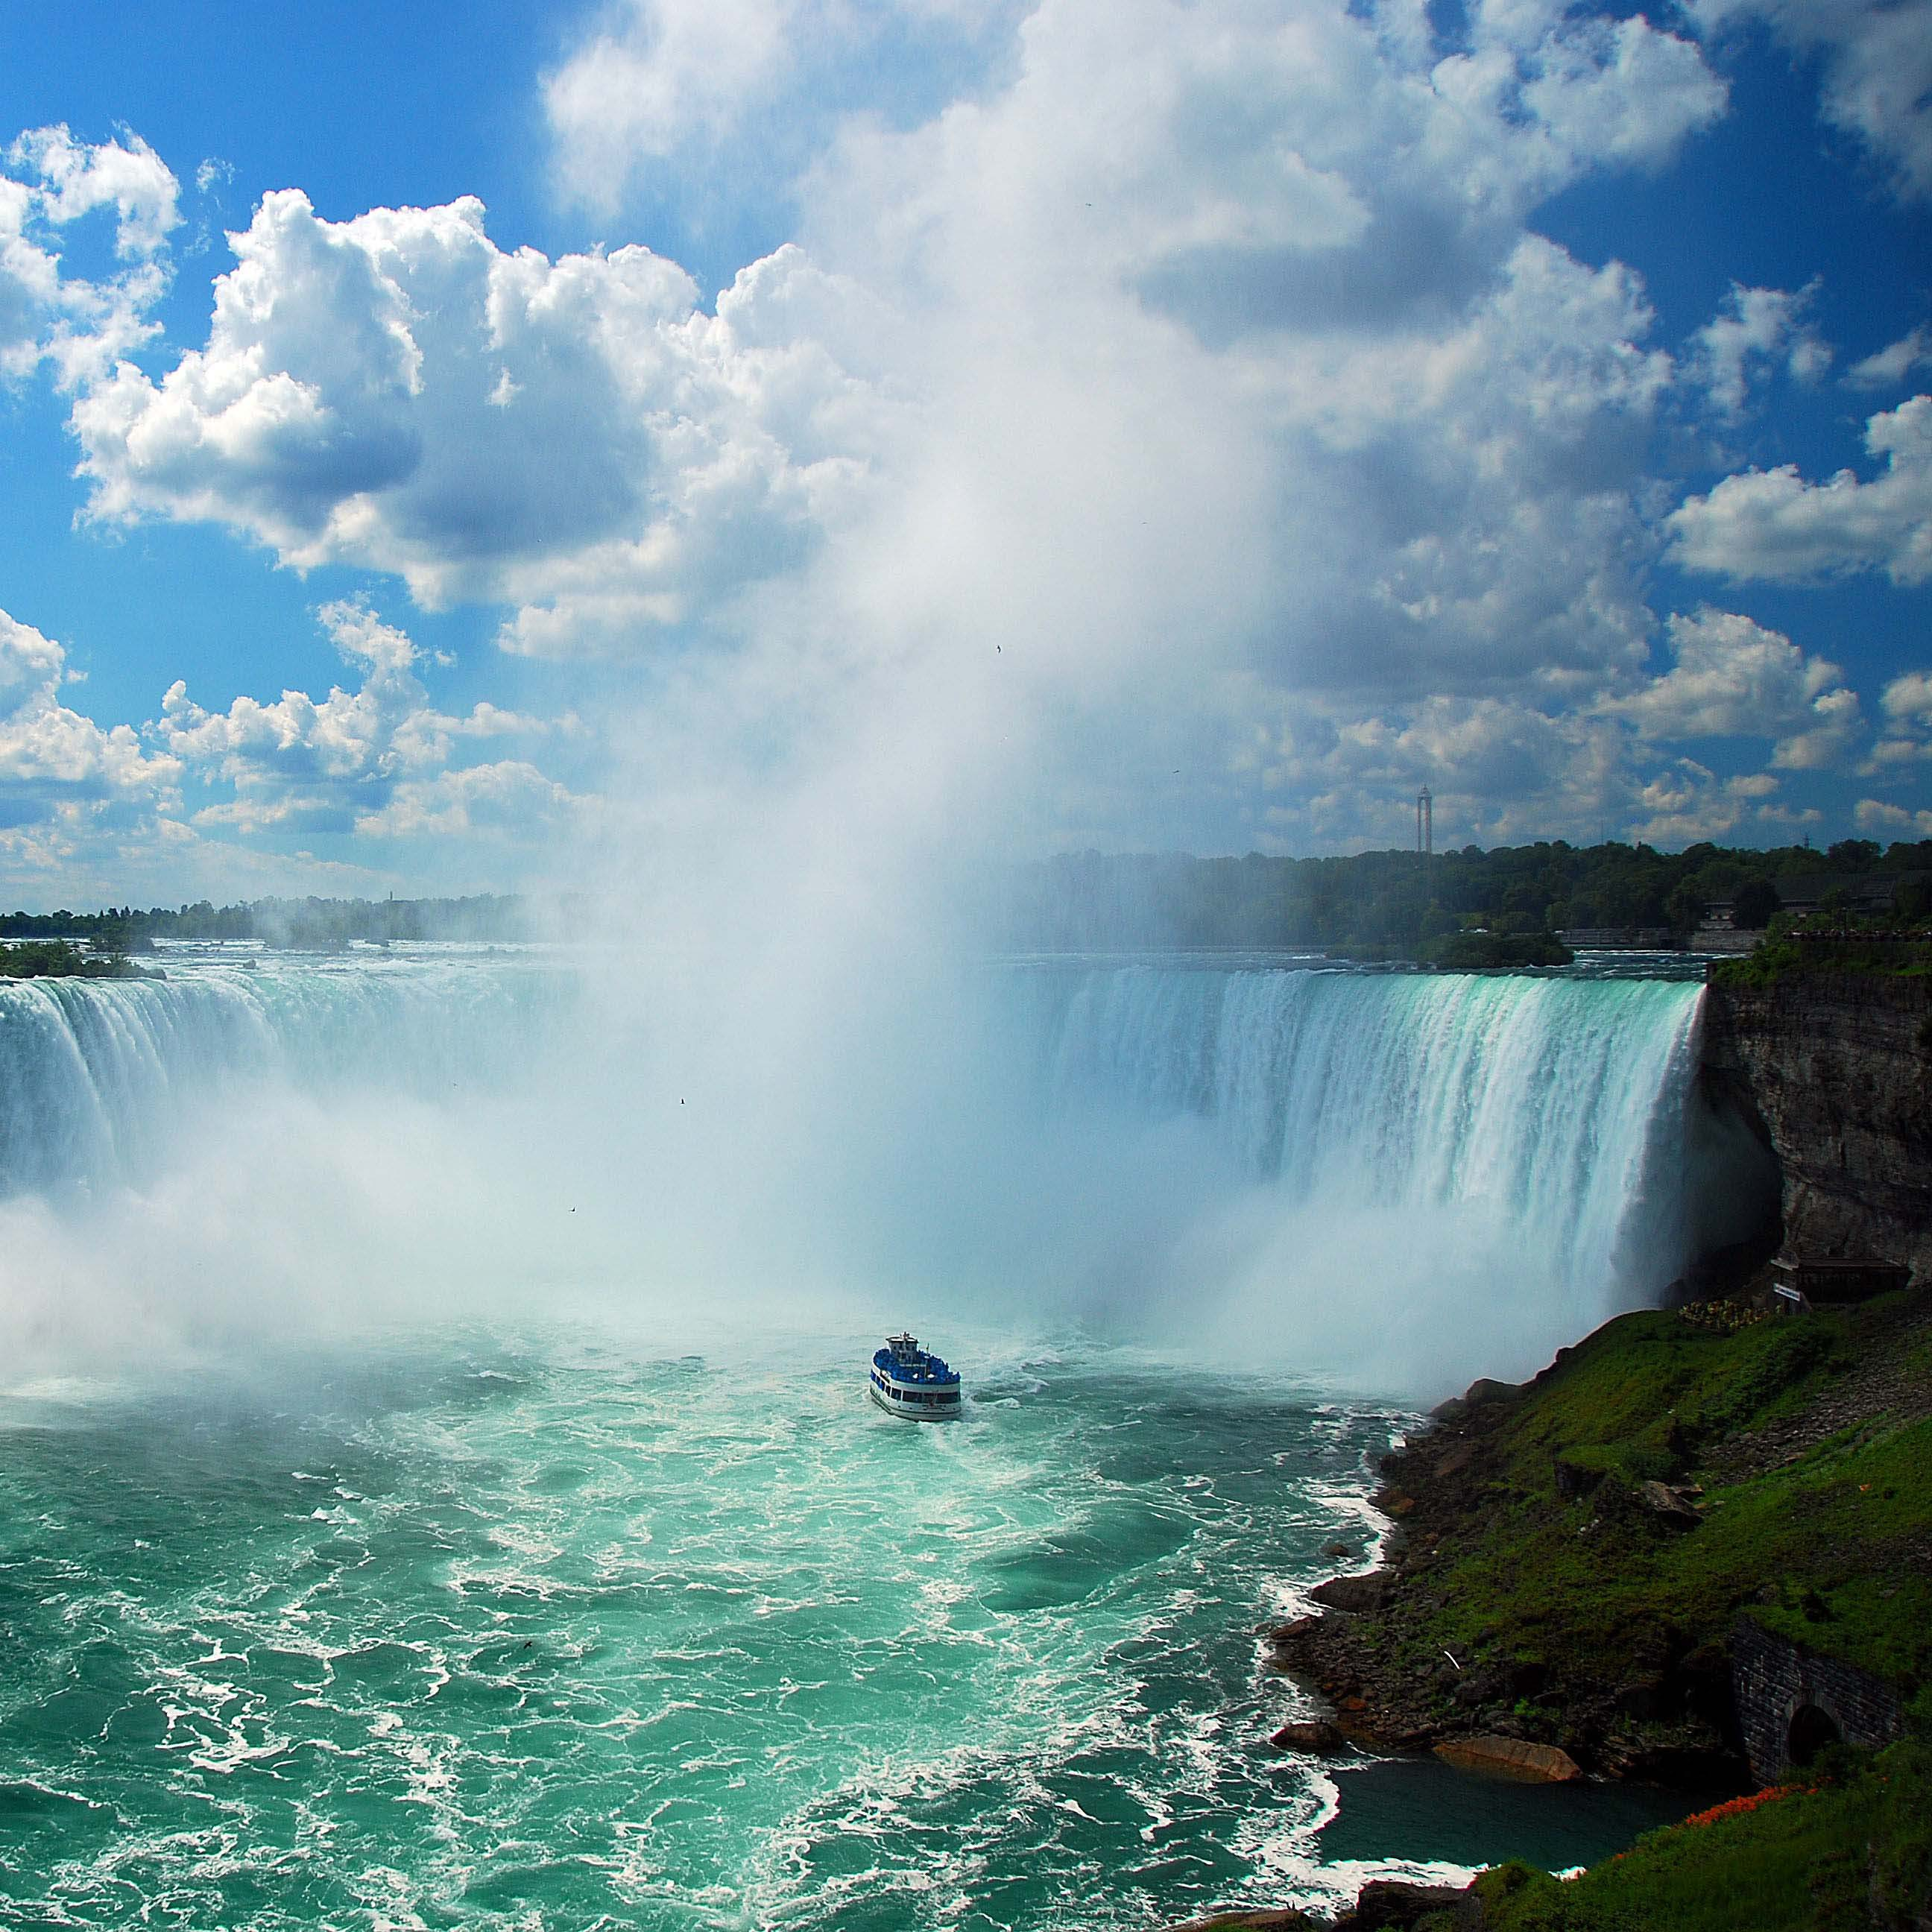 BOXED_Niagara-Falls-Close-Up-Photo